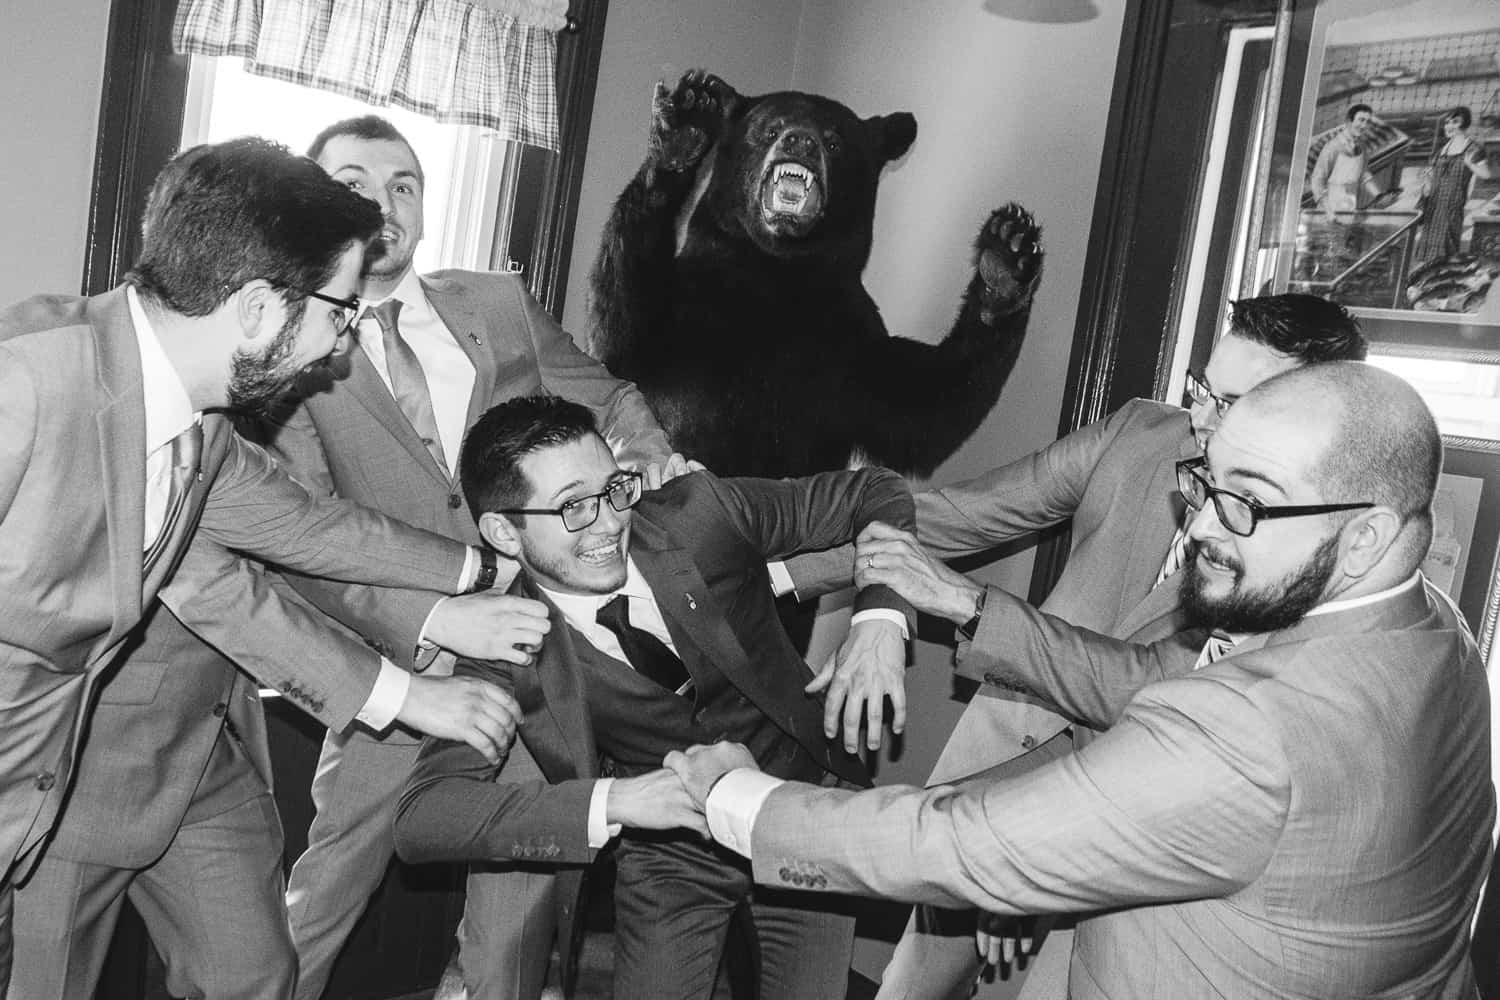 the groomsmen save the groom froma taxidermied bear.